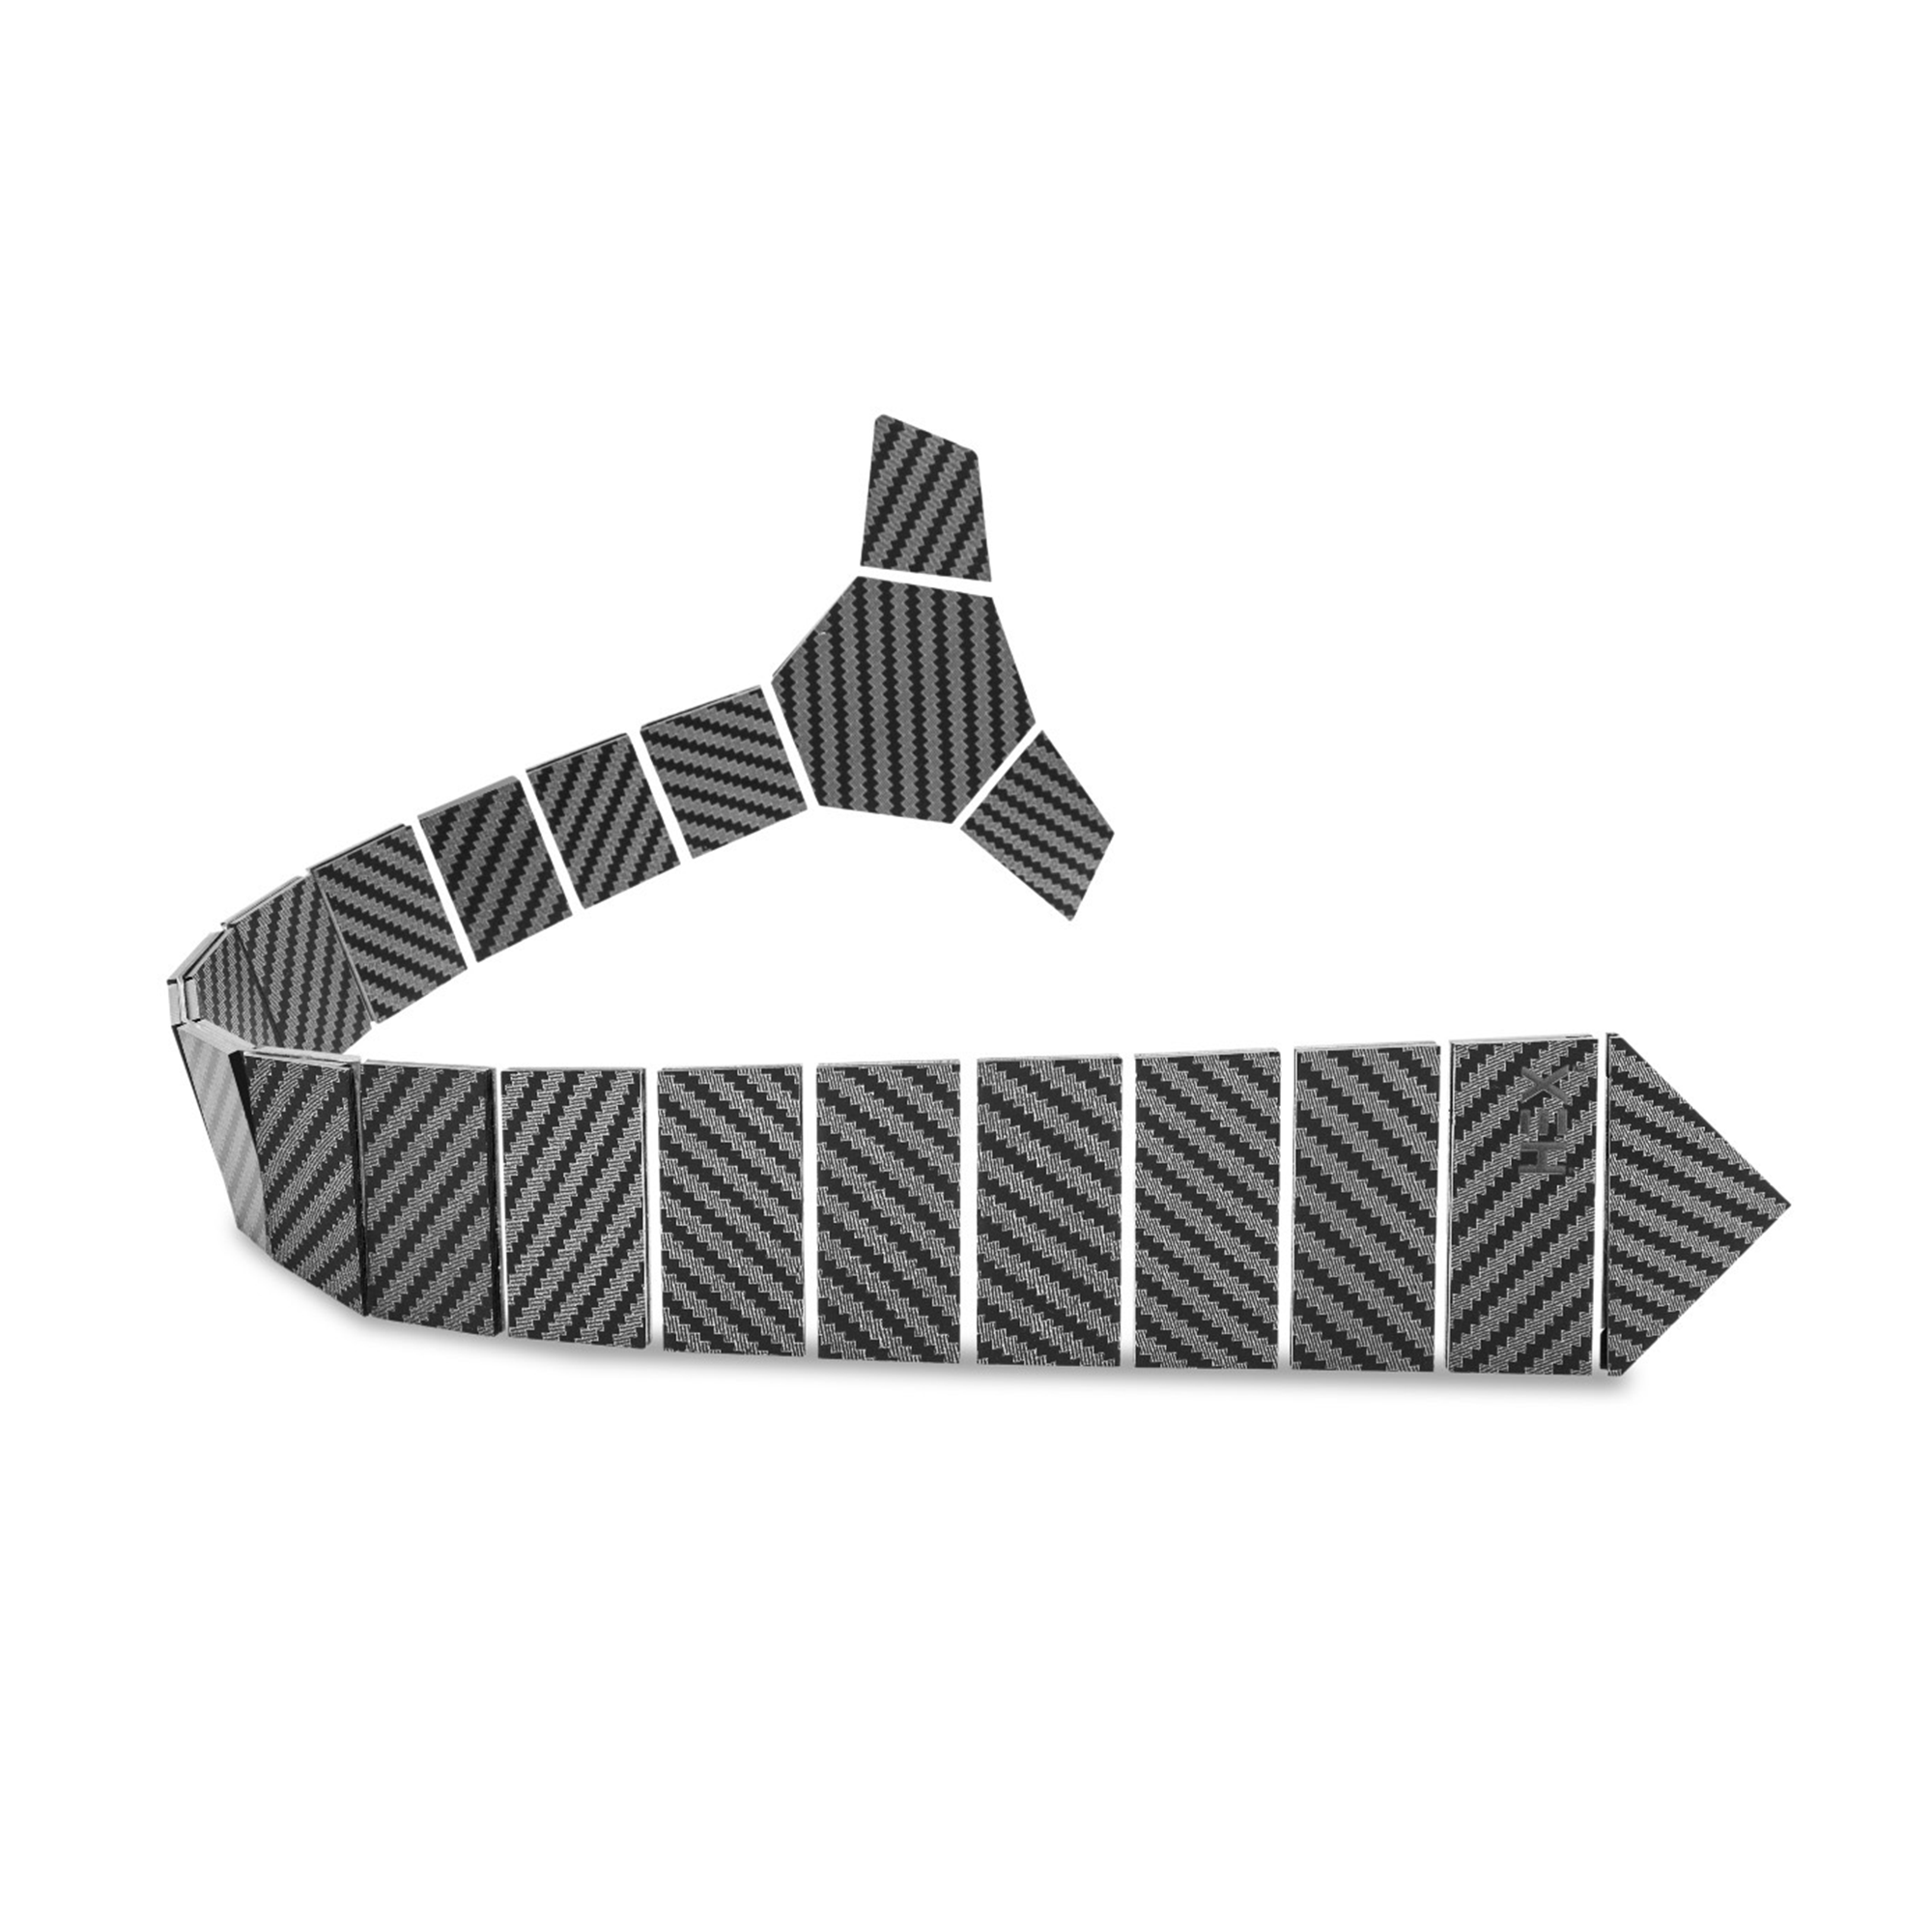 CARBON Dress Tie